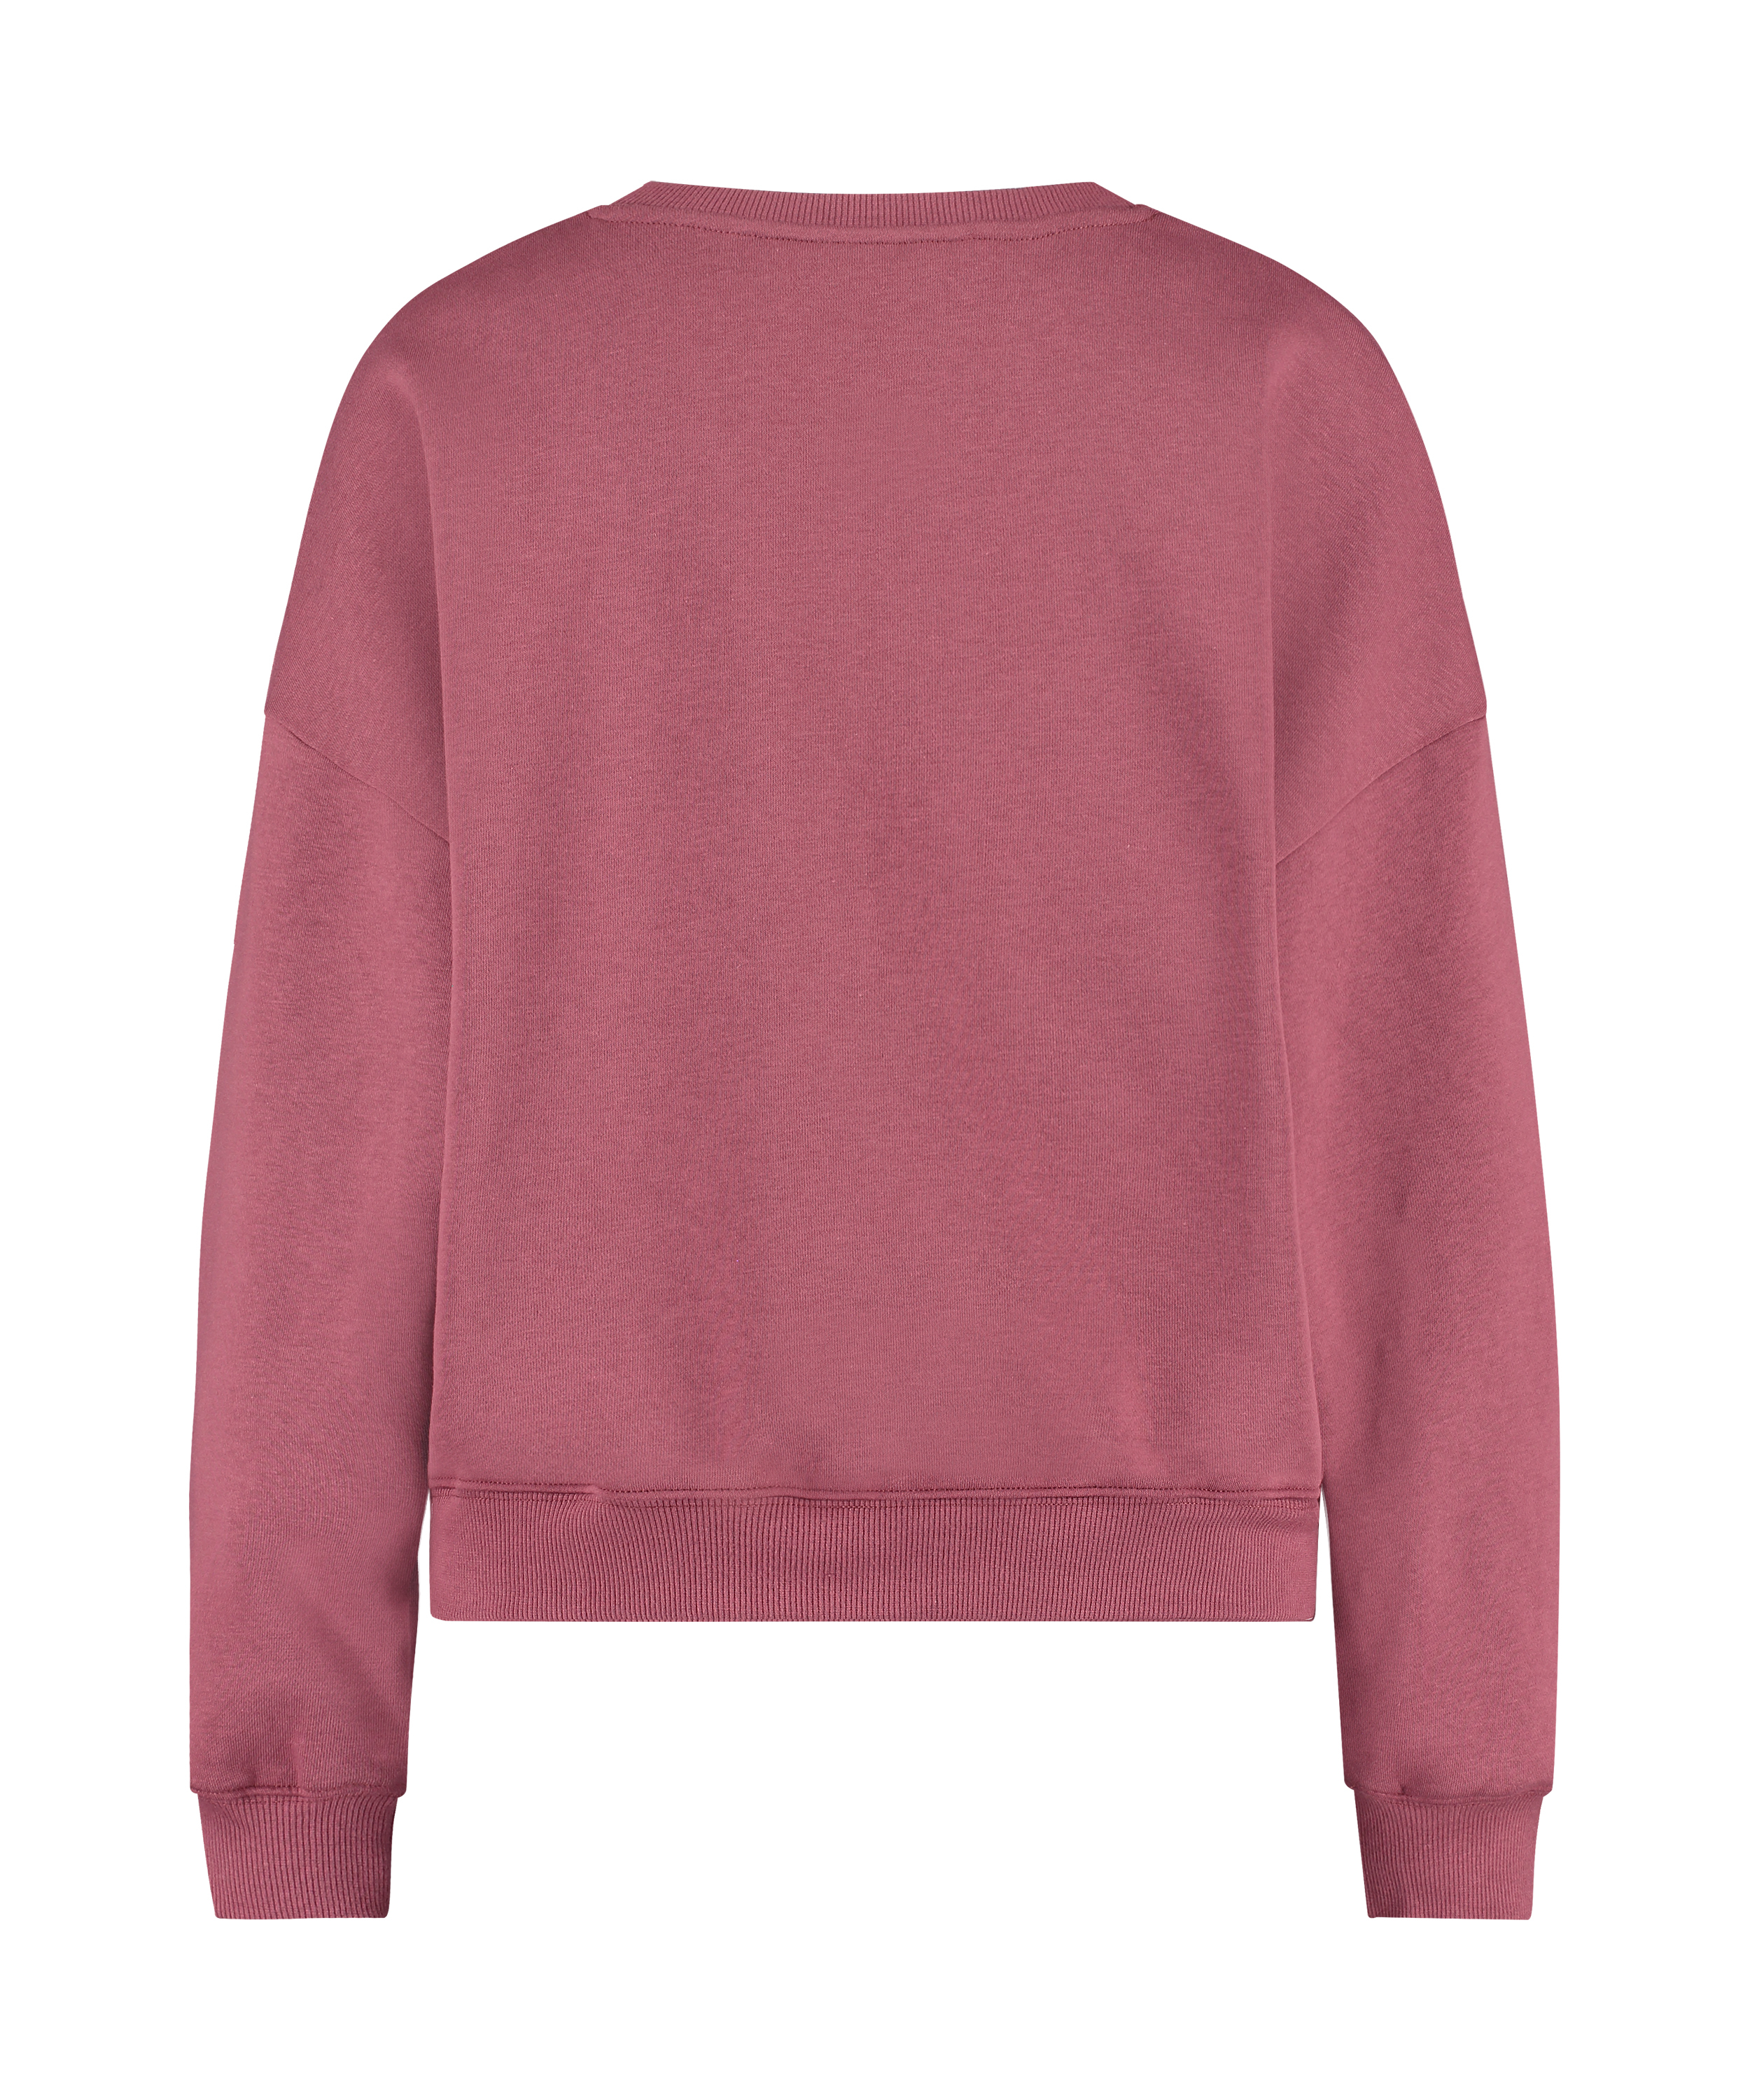 Top Manches Longues Boyfriend Brushed, Rose, main